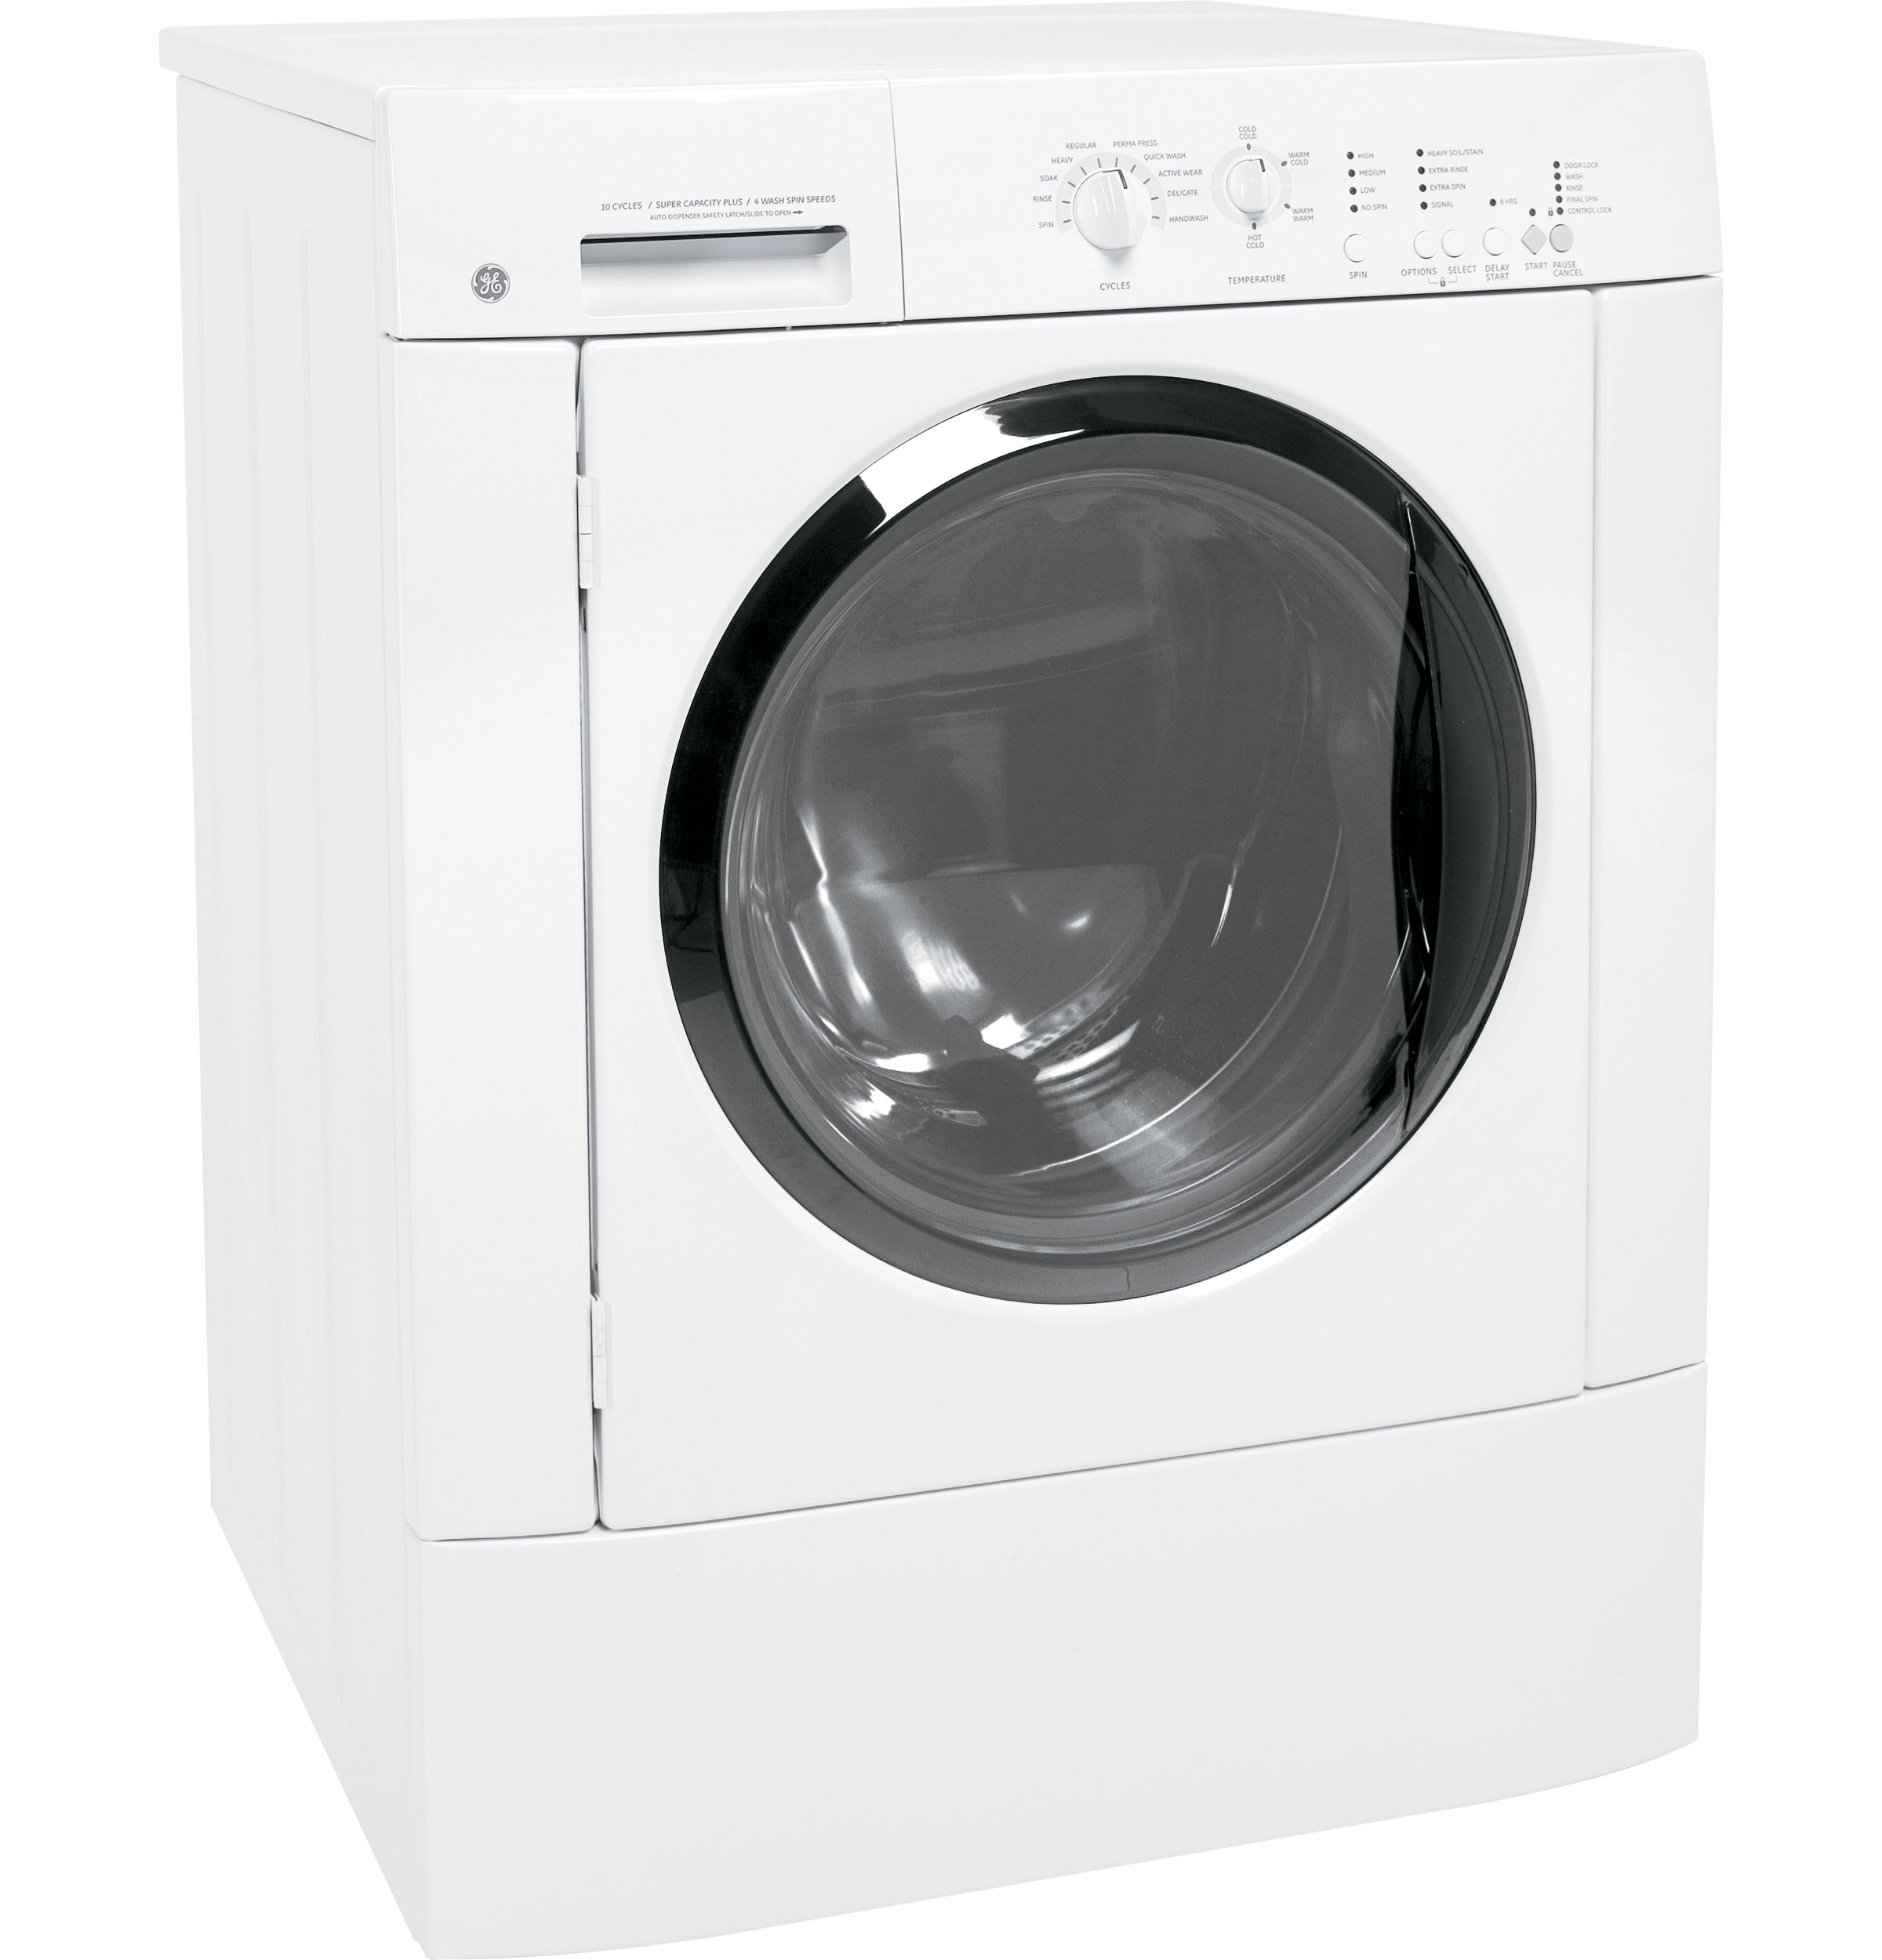 Ge 174 3 5 Cu Ft King Size Capacity Frontload Washer With